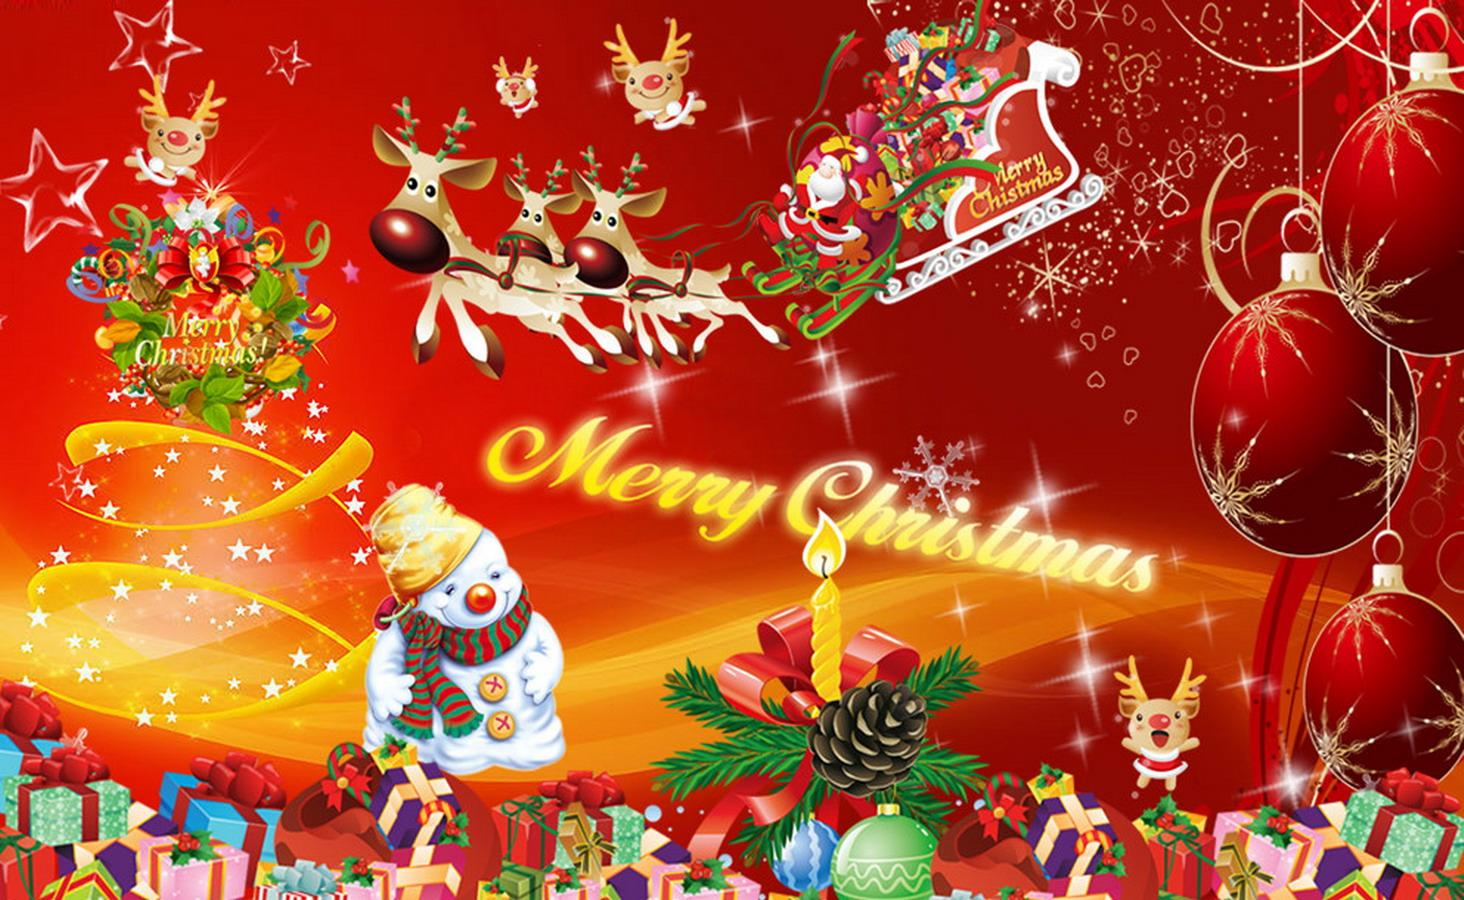 Merry christmas tree lights snow man santa animated hd wallpaper voltagebd Image collections